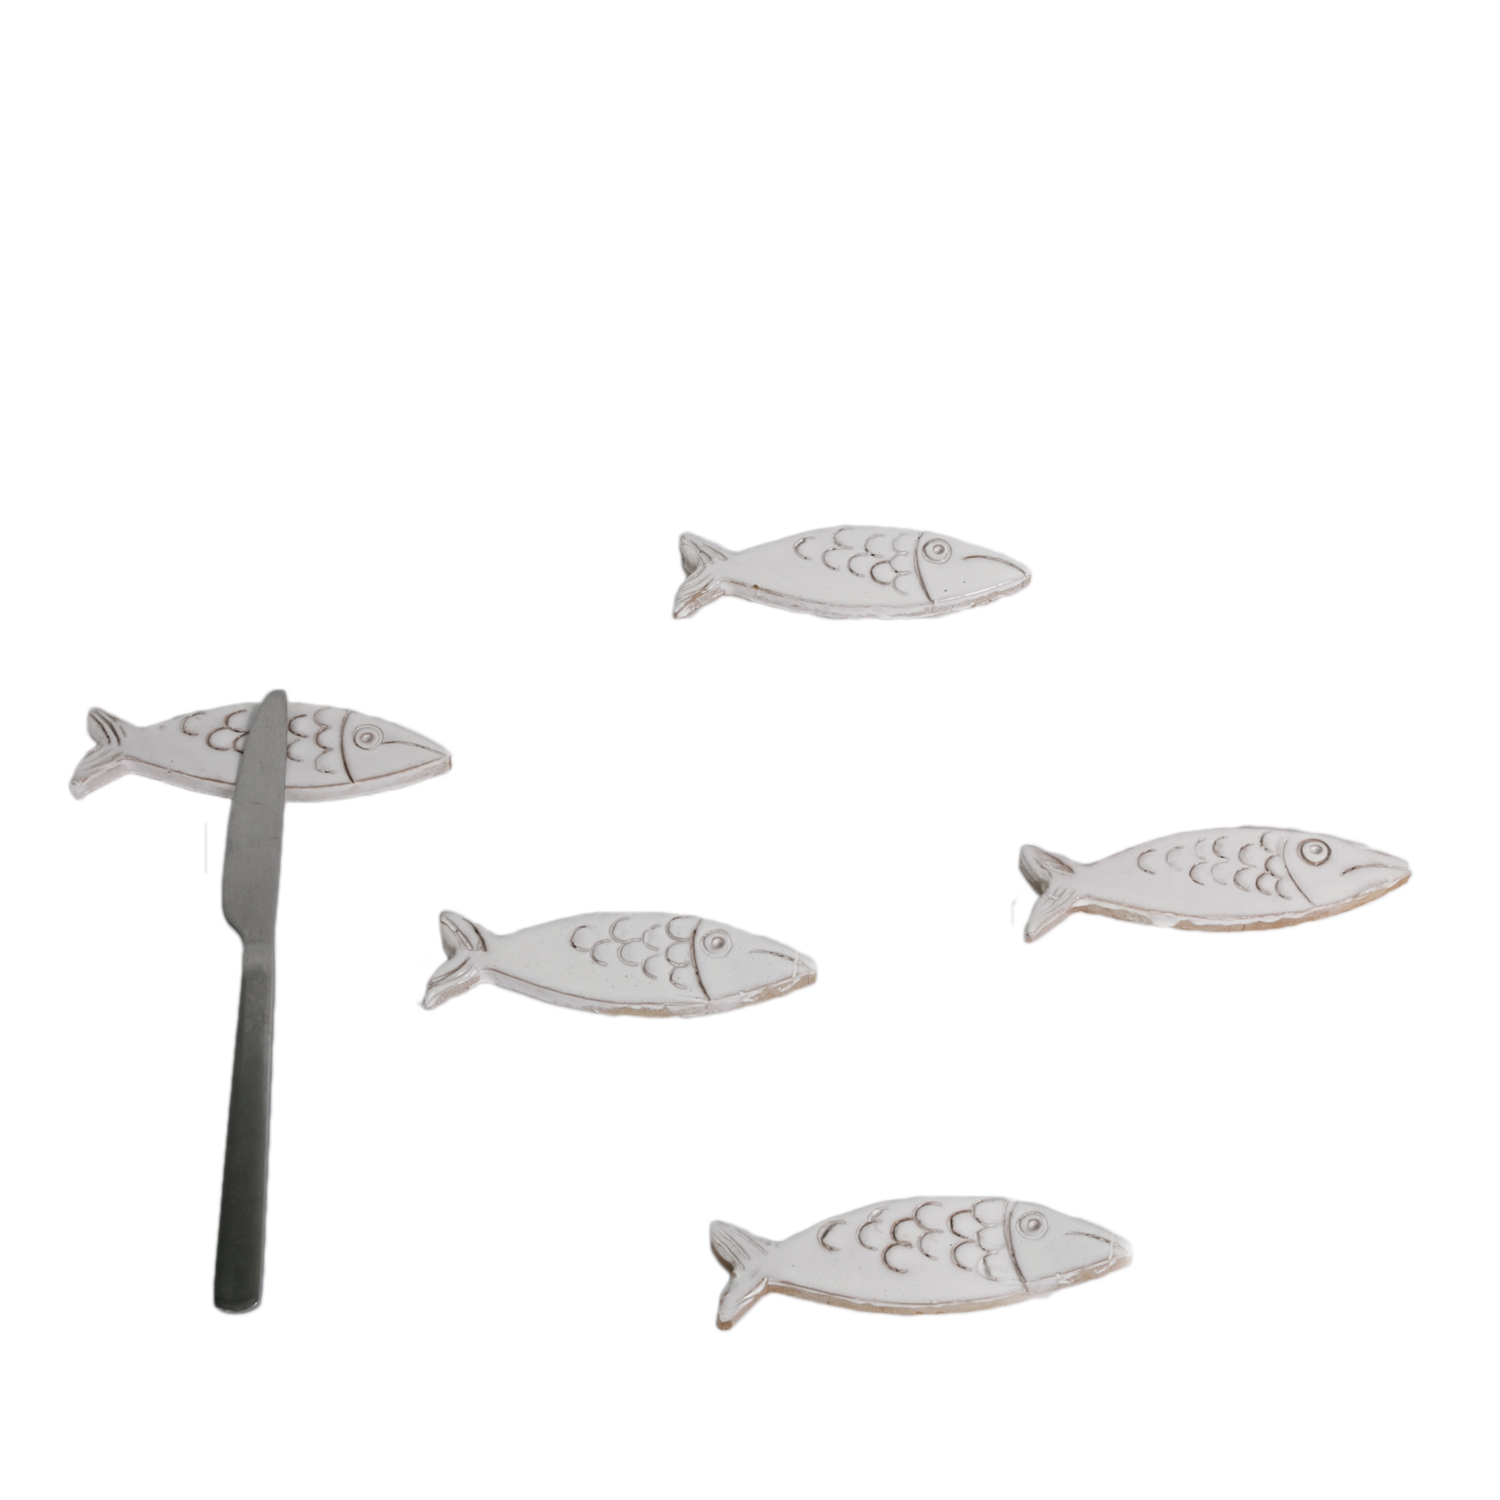 Fish knife holder COMING SOON